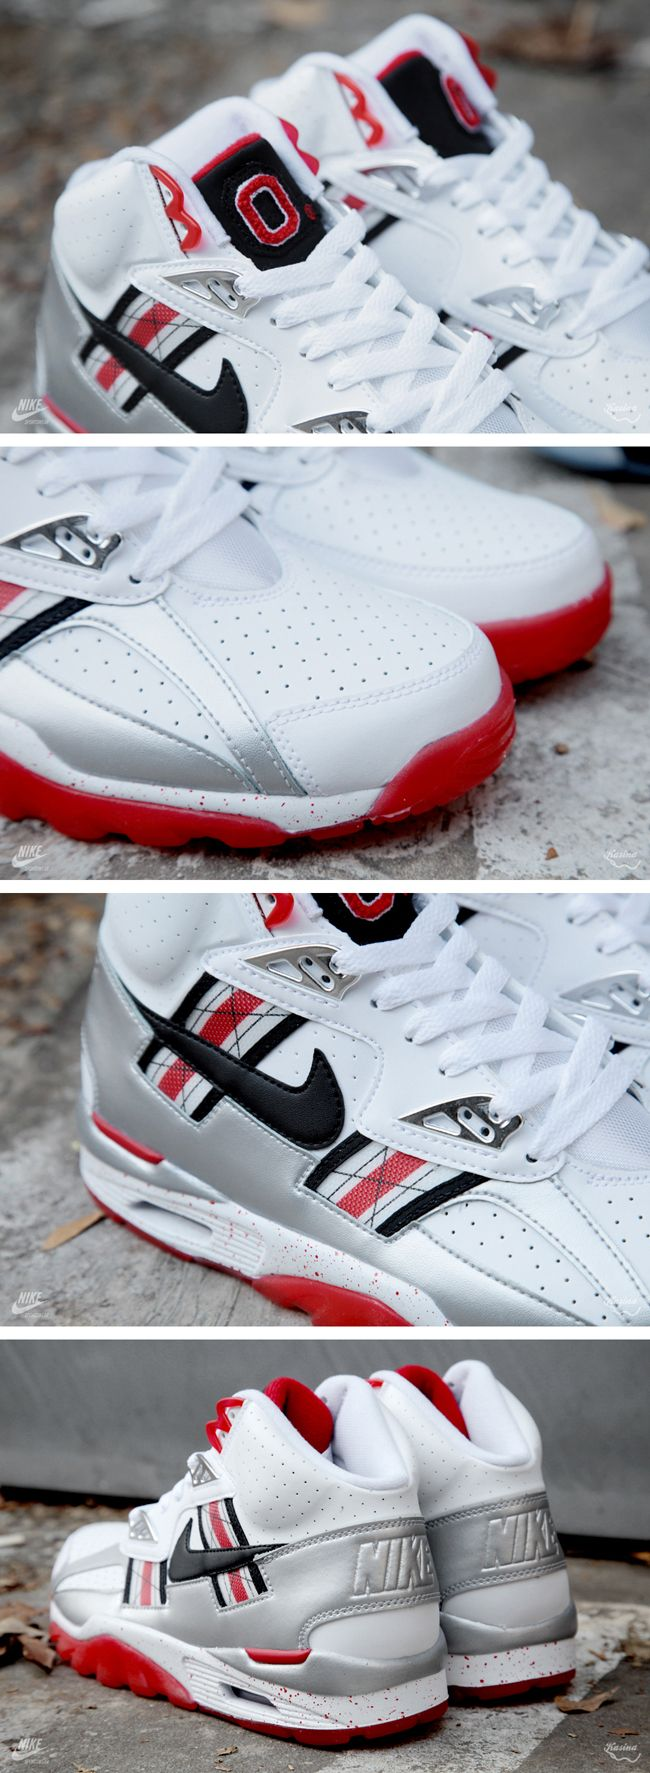 """Nike Air Trainer SC QS """"Ohio State Buckeyes†(Detailed Pictures ... 66e411dc097f"""